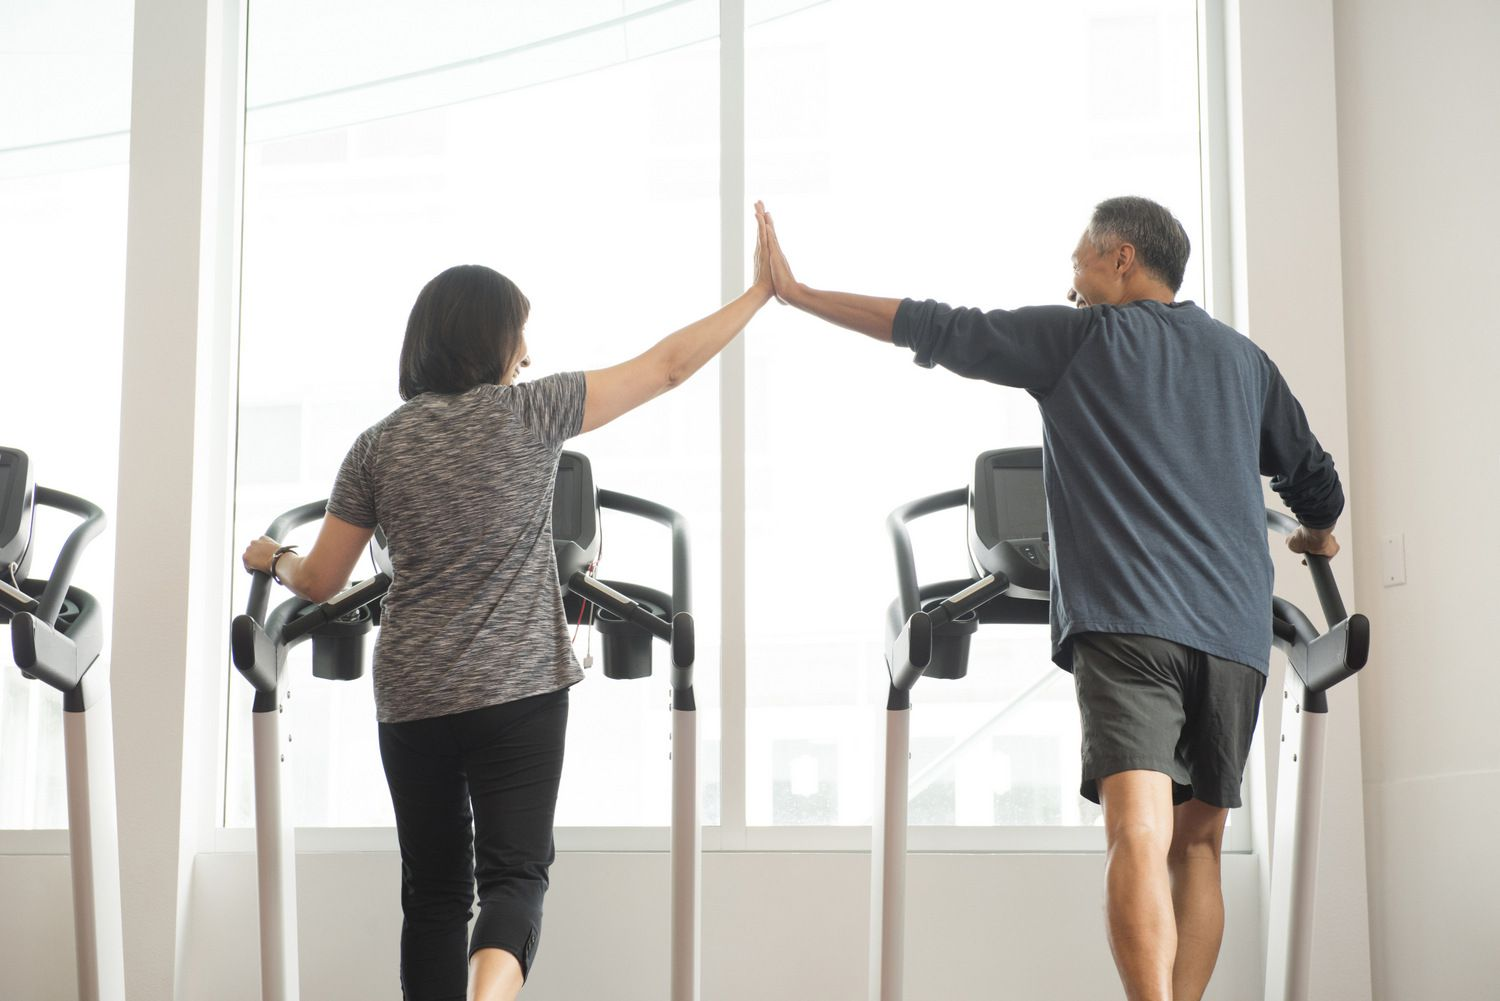 Couple high-fiving on treadmill